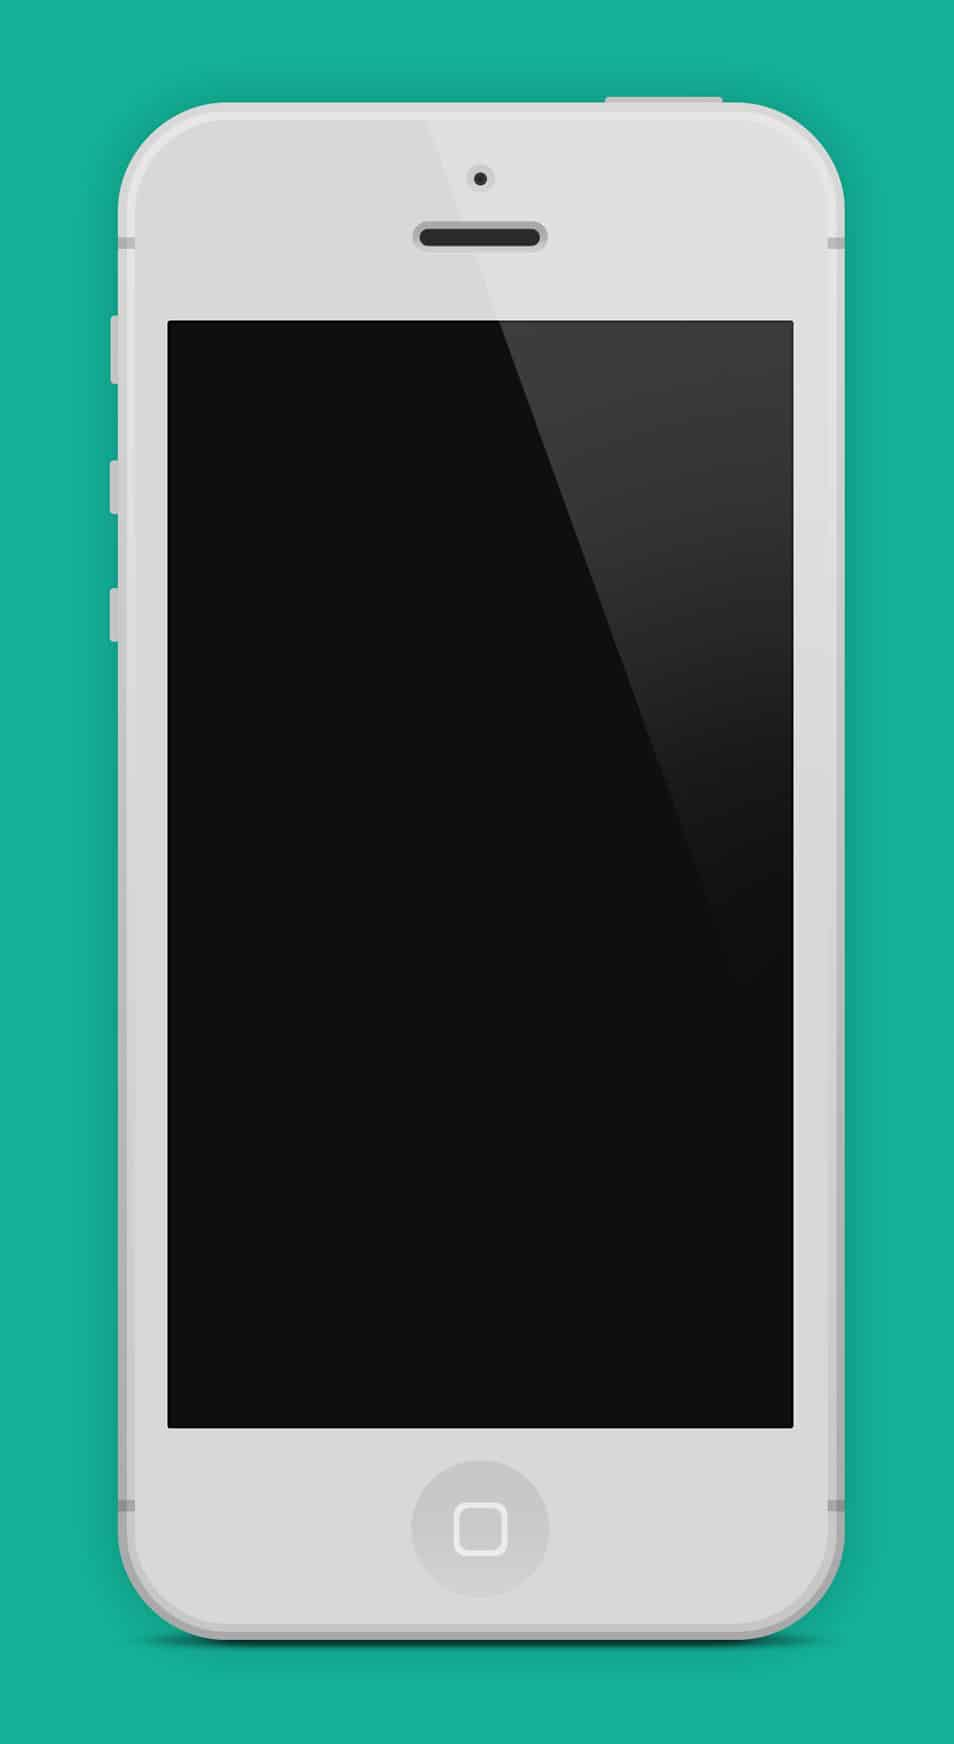 Flat iPhone 5 Black & White PSD